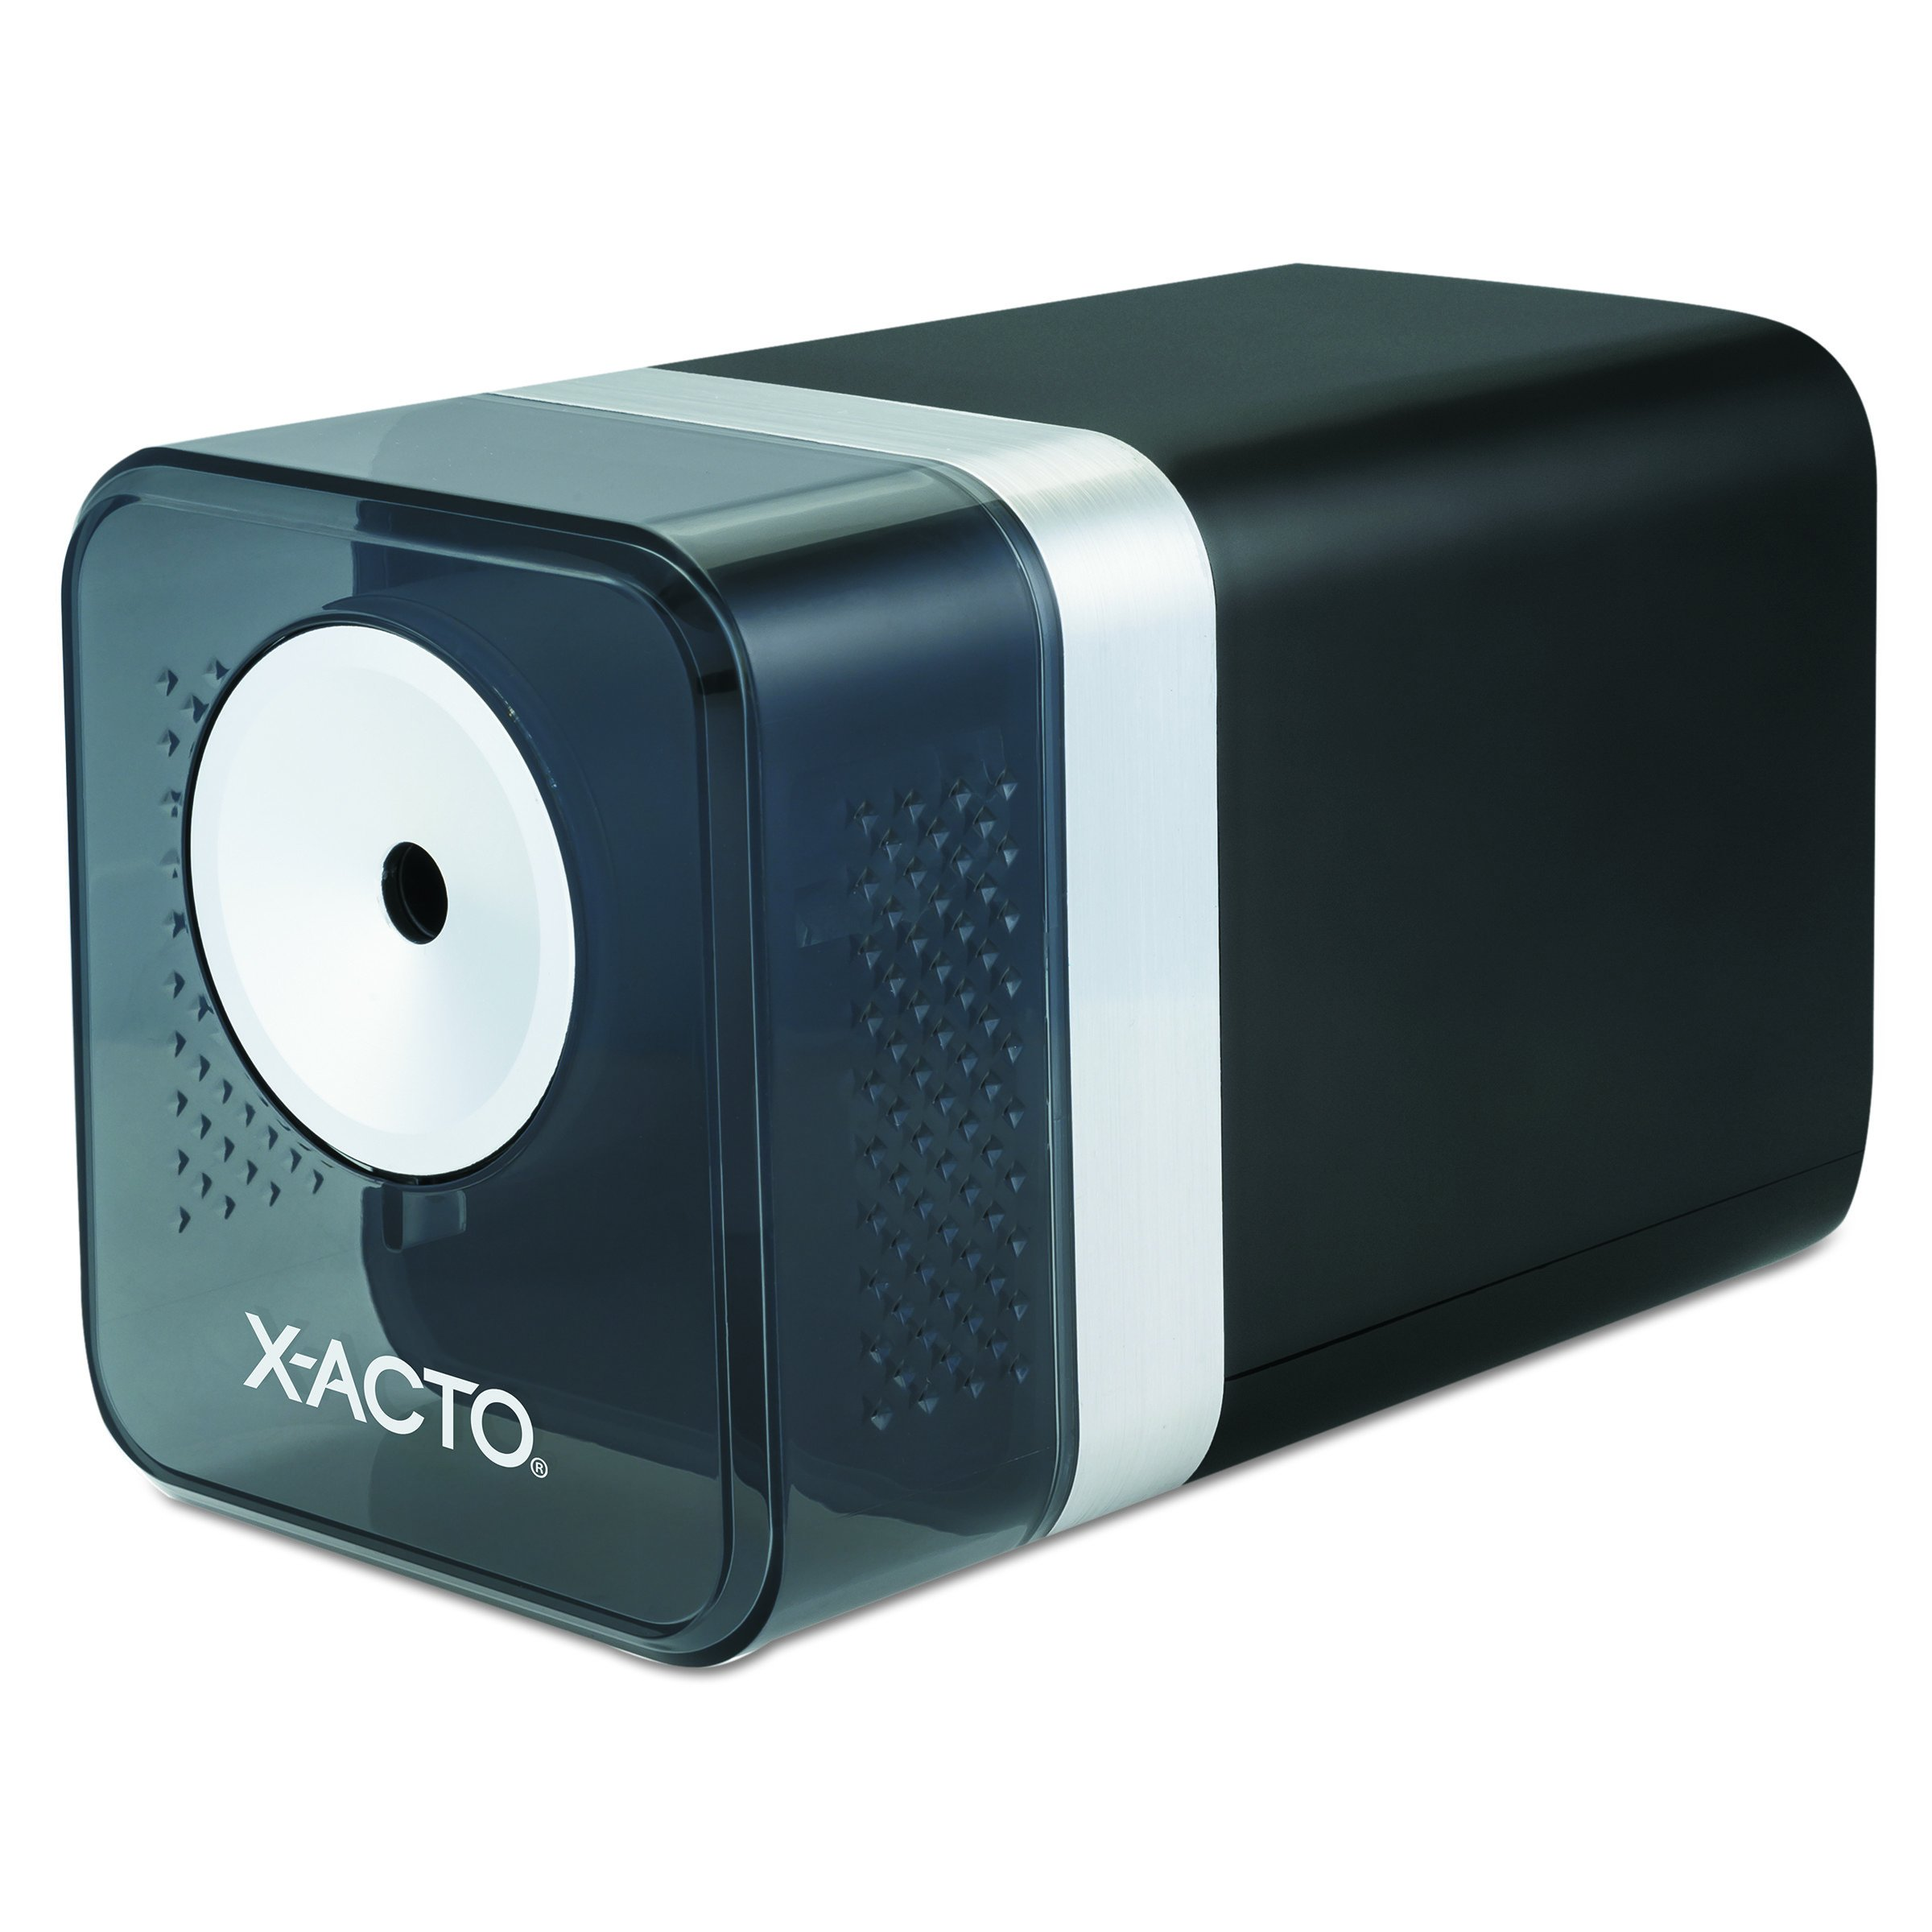 X-ACTO 1744 Power3 Office Electric Pencil Sharpener, Black by X-Acto (Image #1)